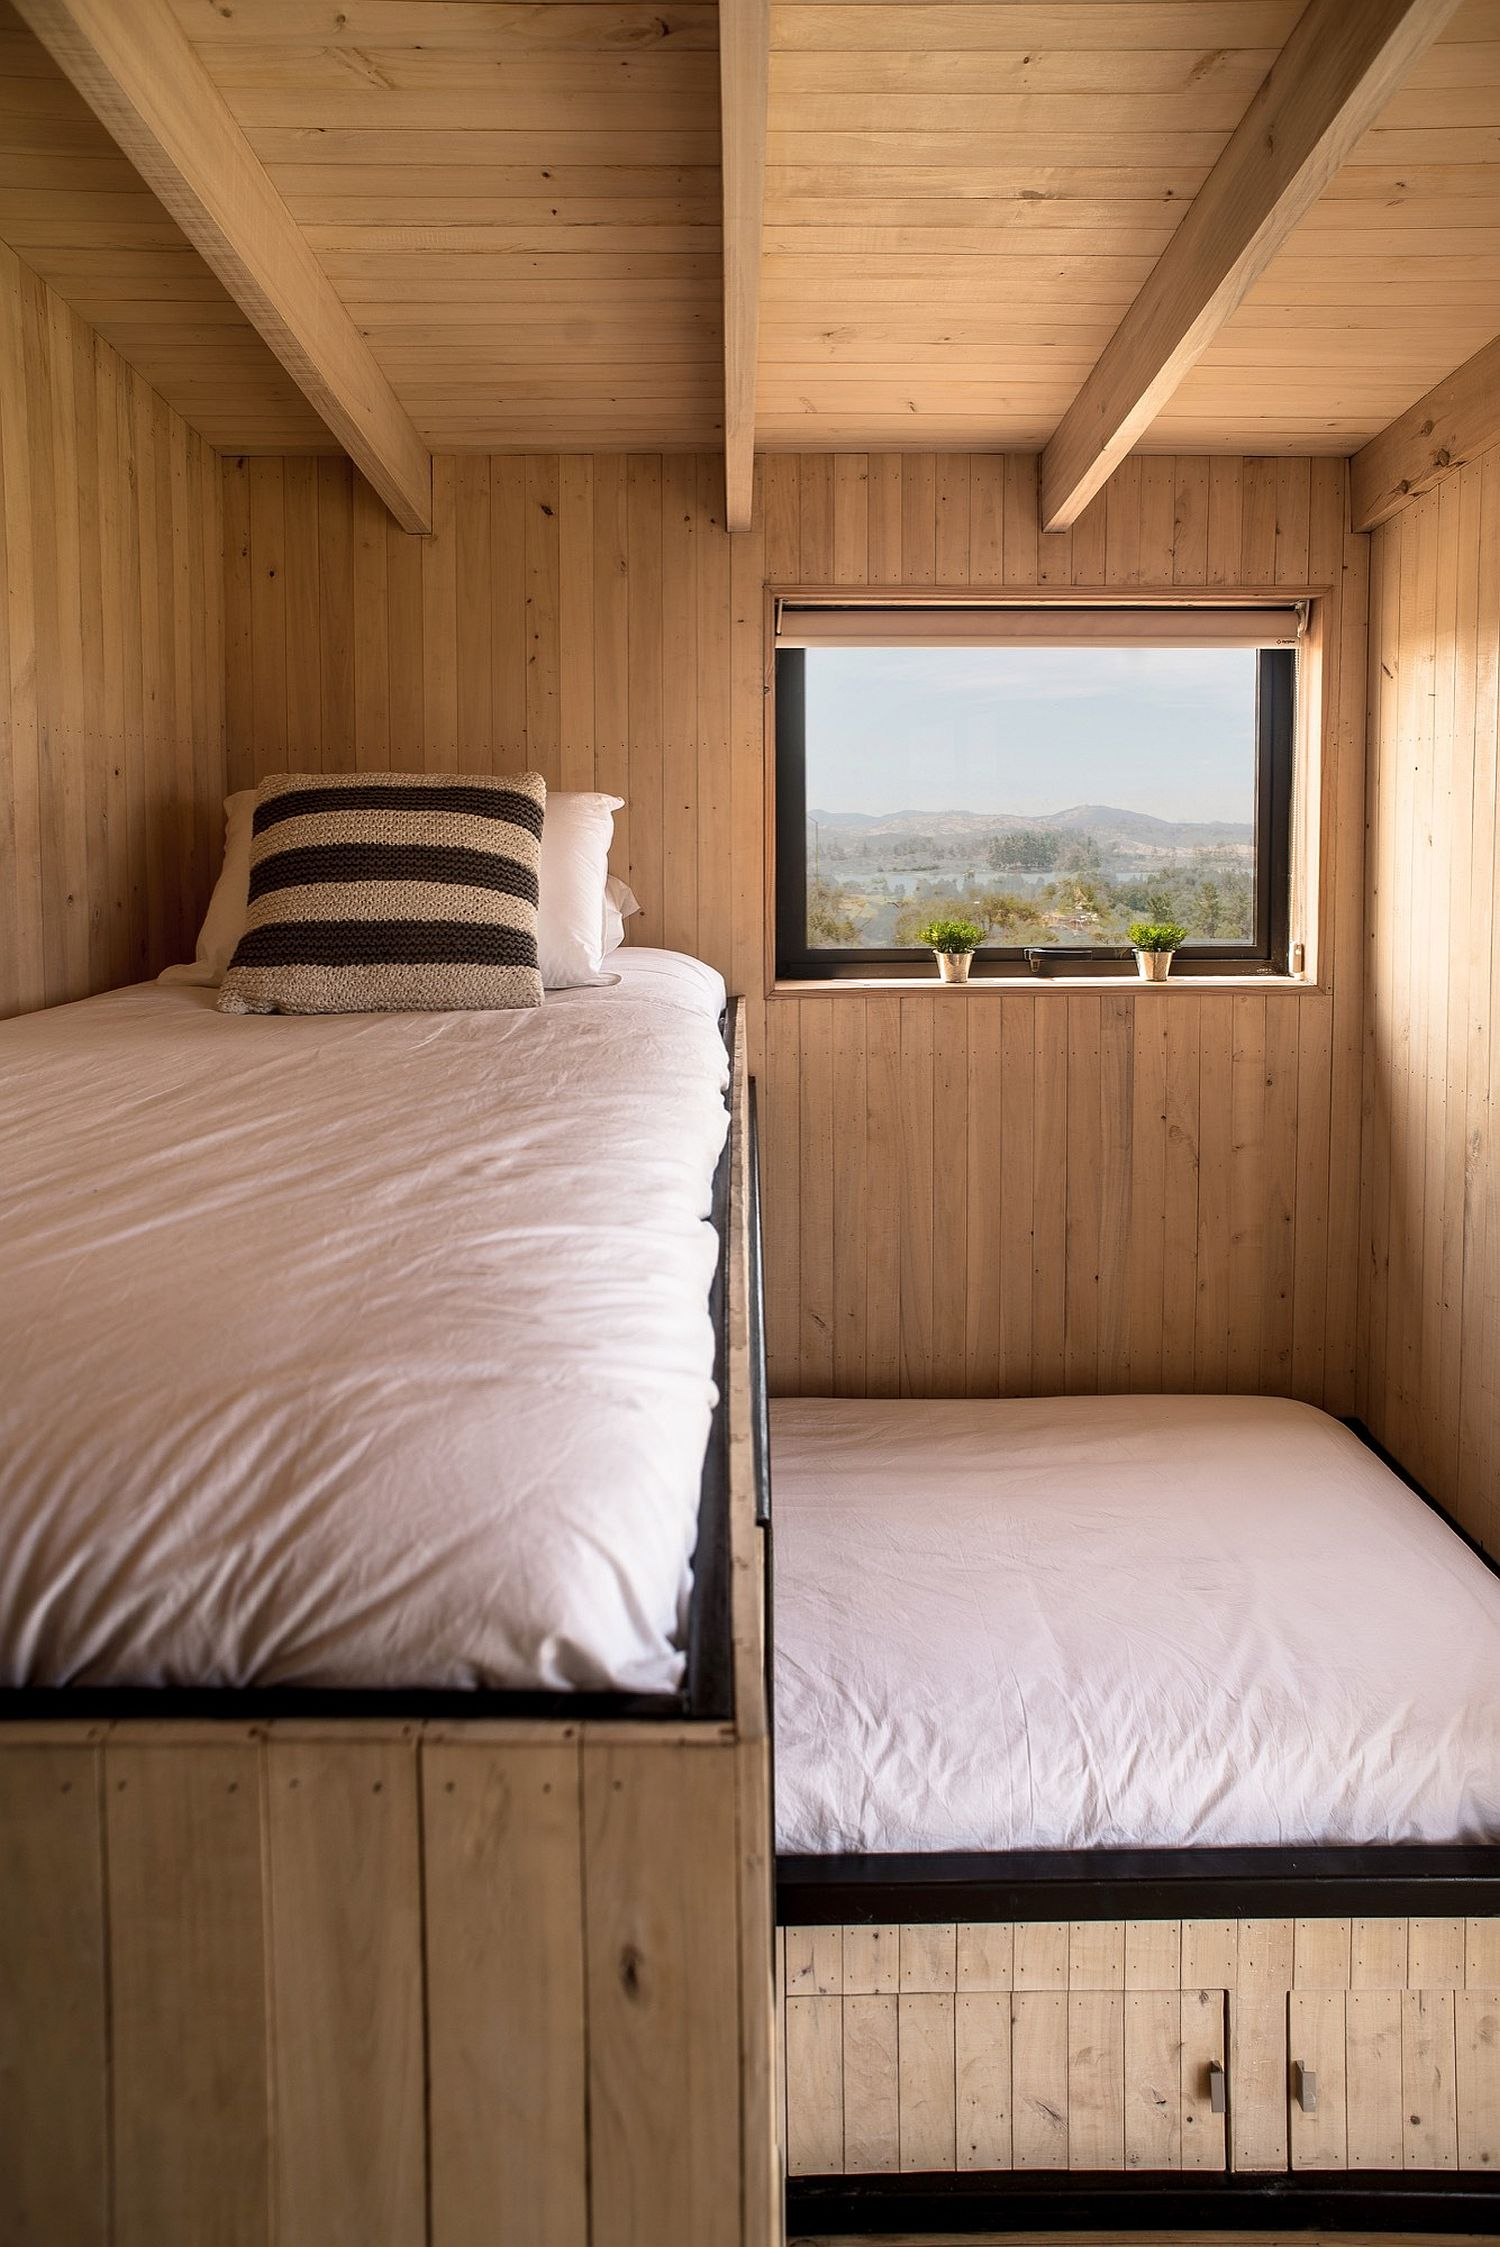 Creating space for a loft bed in the small cabin-style bedroom